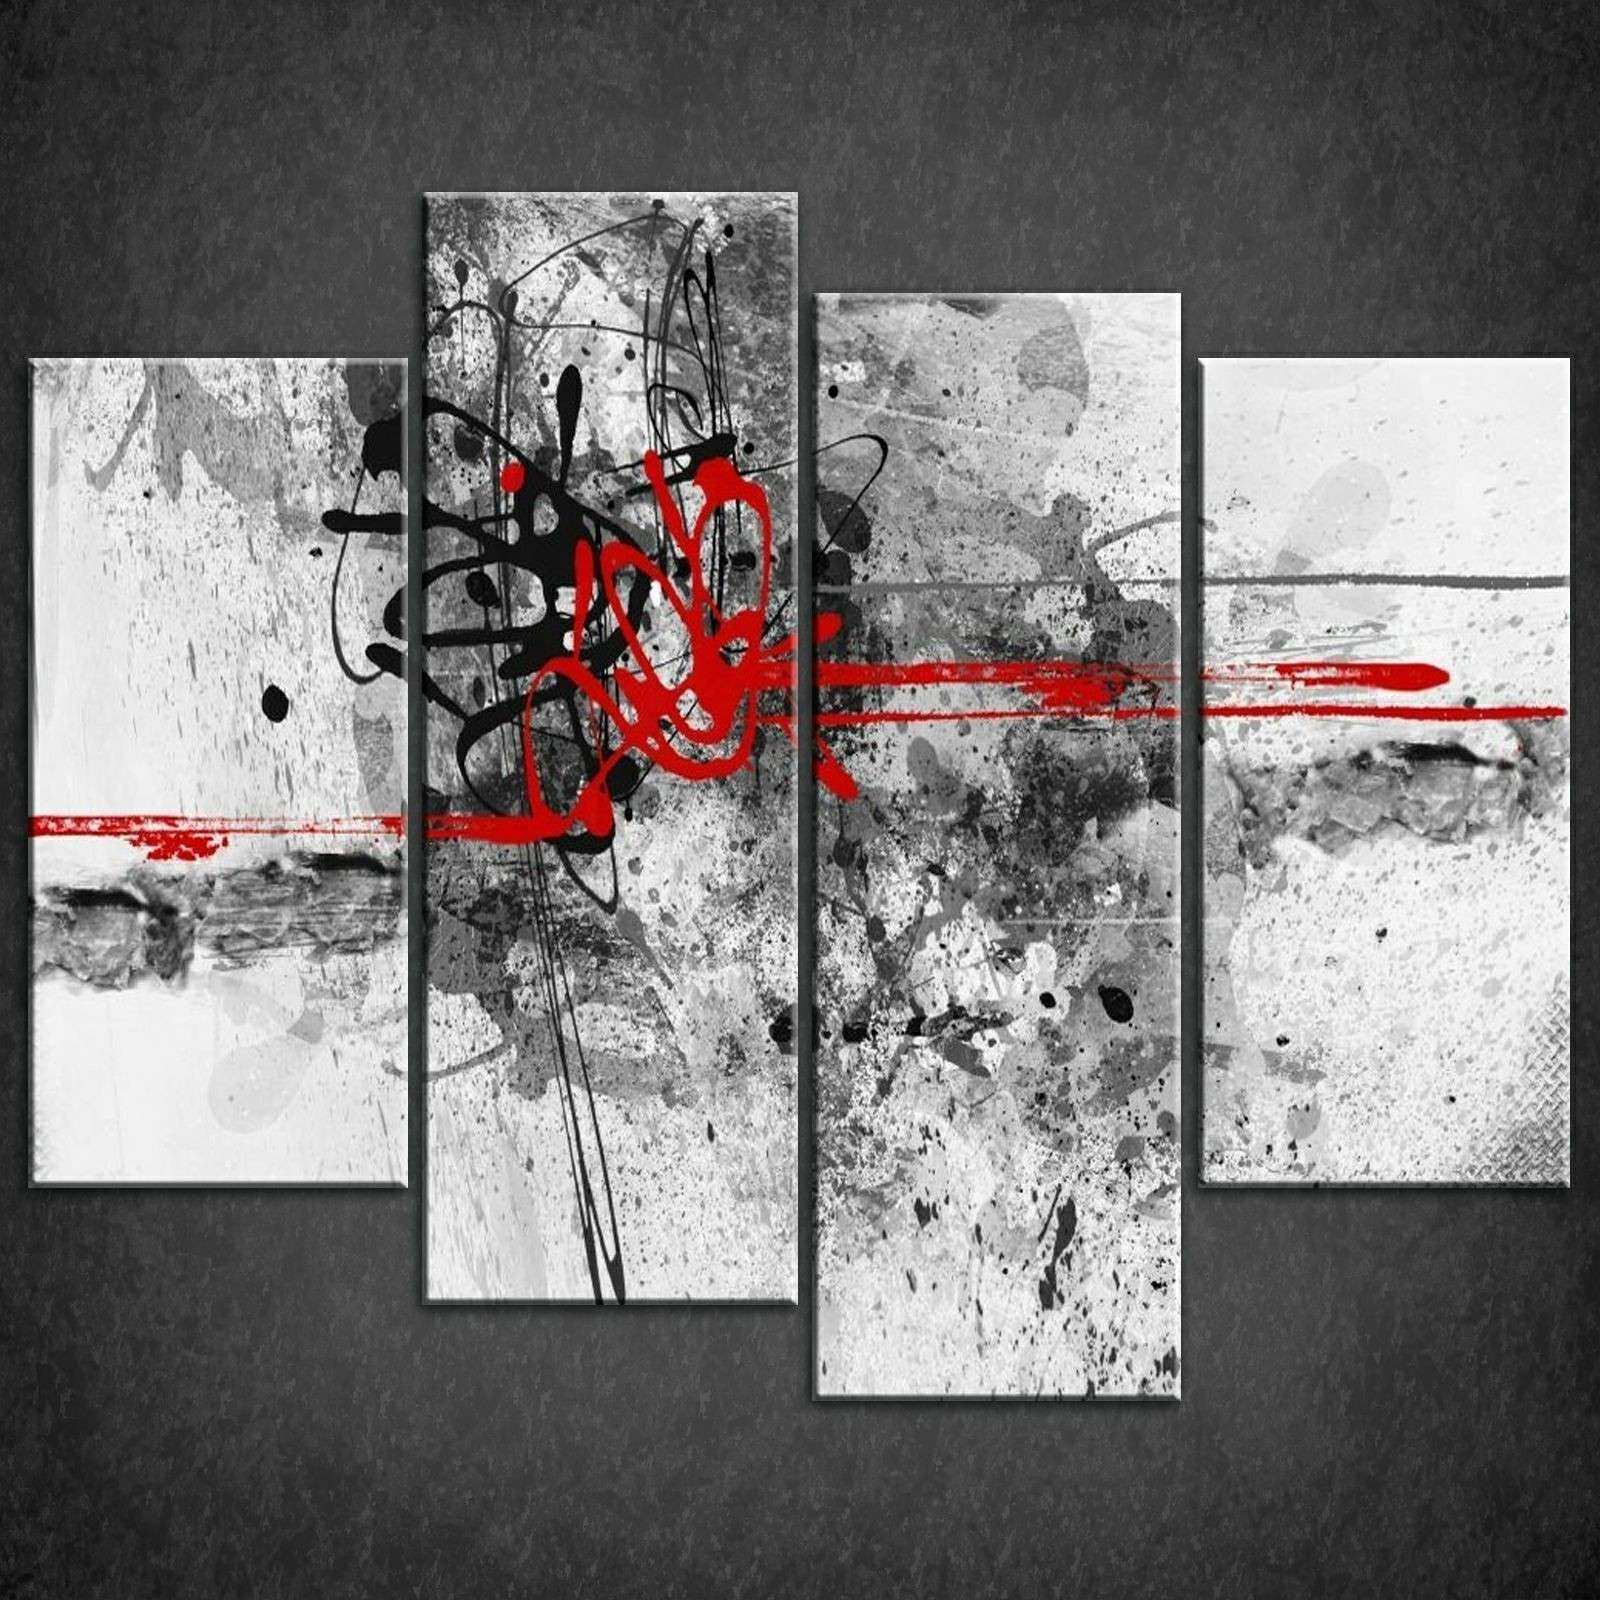 2018 Best of Abstract Wall Art Prints